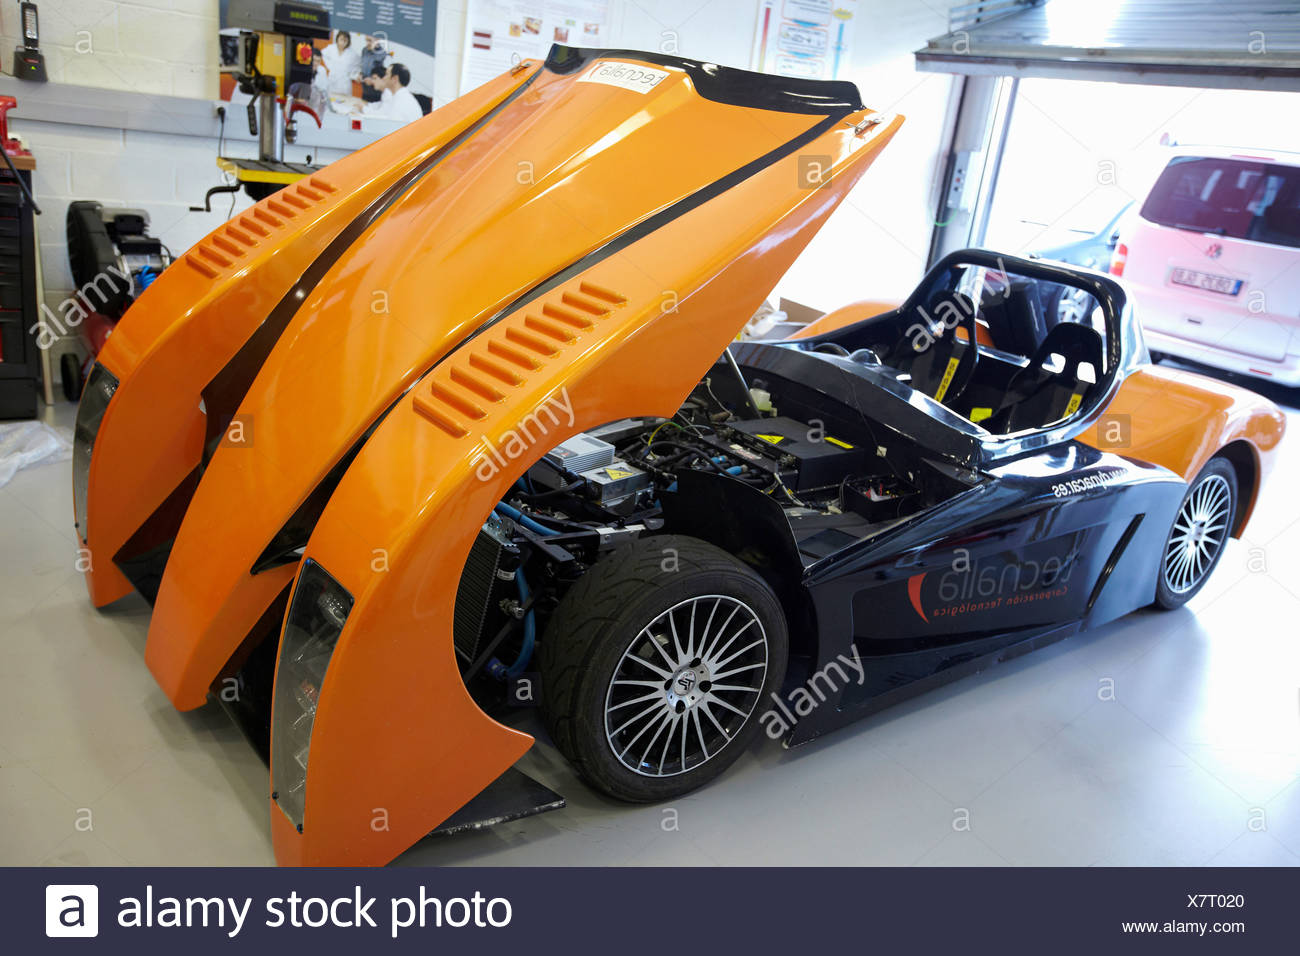 Dynacar Electric Car New Concepts And Components Development Platform For Electric Propulsion Vehicles Tecnalia Research Stock Photo Alamy